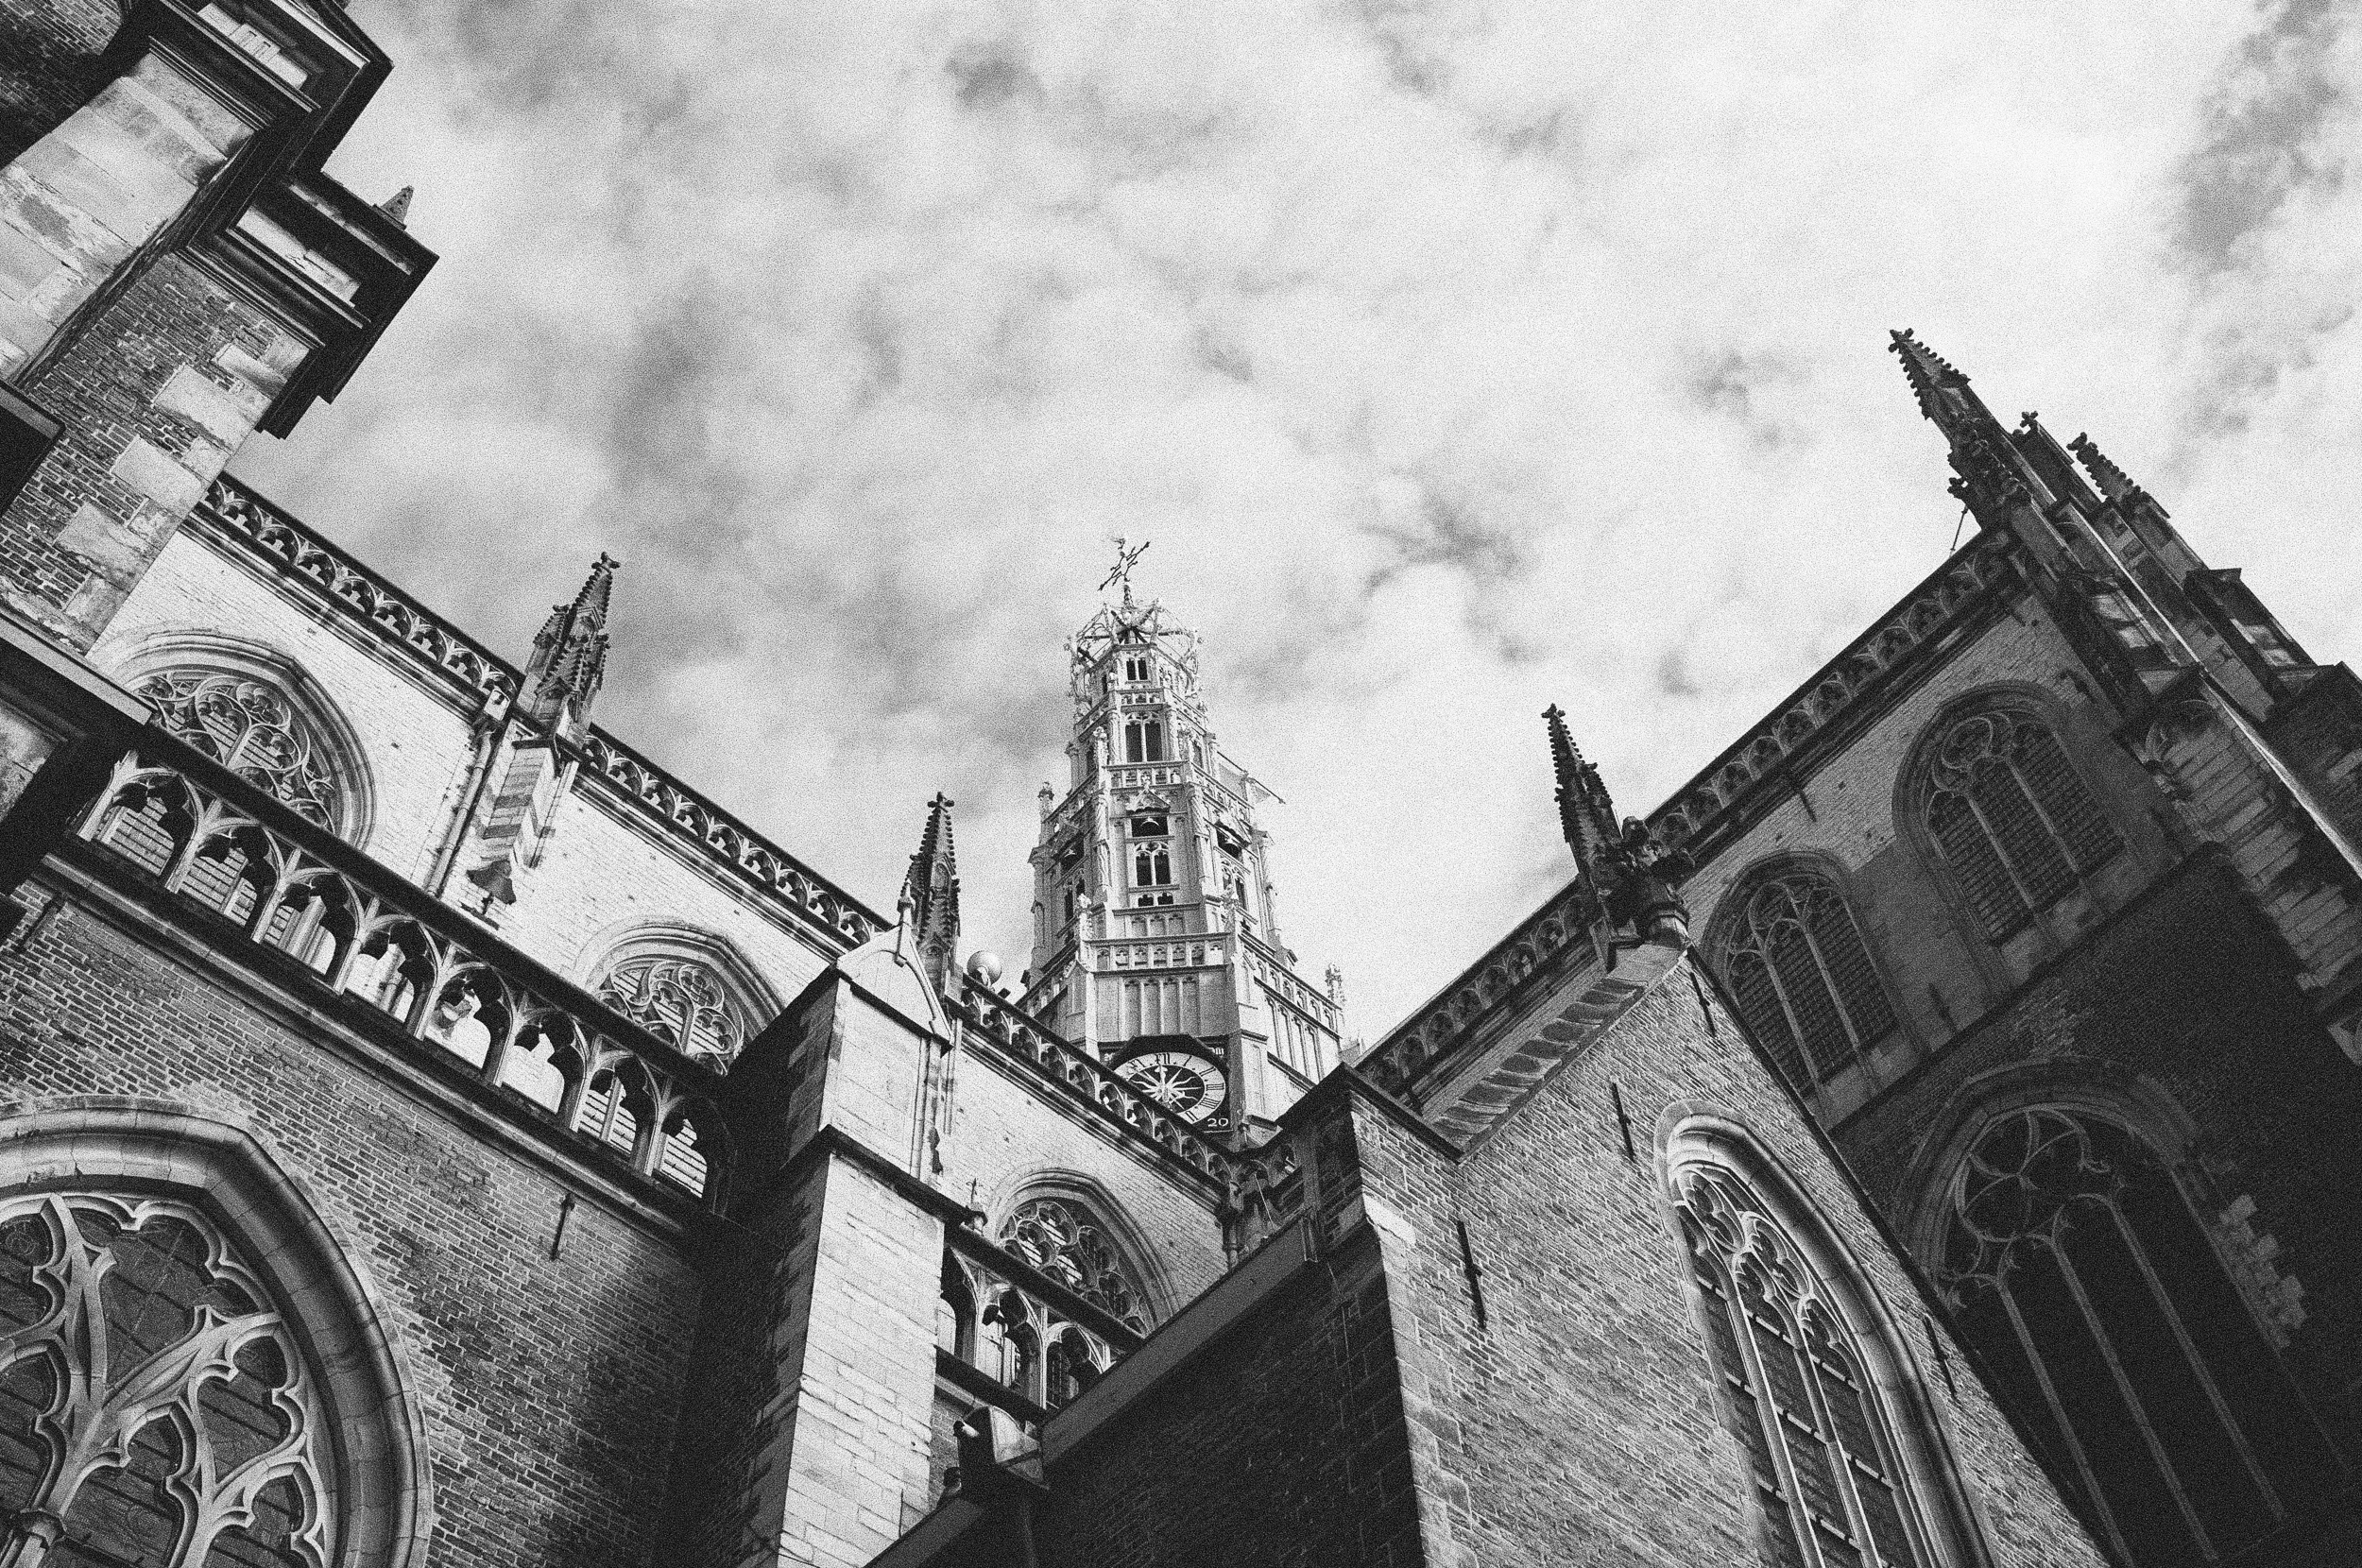 St. Bavo Church, Haarlem.Photo taken with Fuji X100S, edited with VSCO.